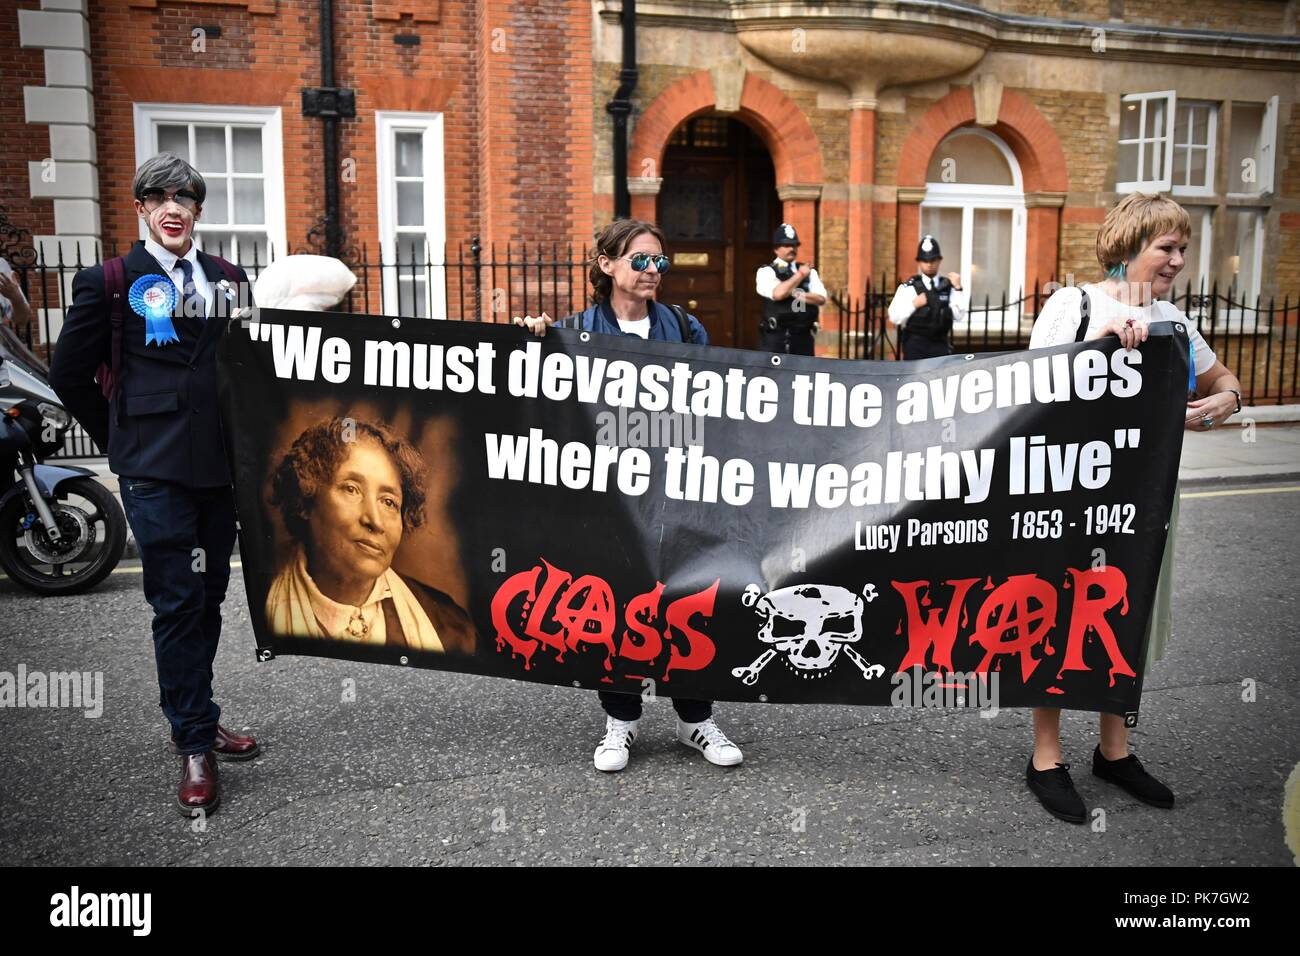 Westminster London United Kingdom - 11th September 2018 - Class War protest outside the Westminster home of Jacob Rees Mogg Credit: Stuart Mitchell/Alamy Live News - Stock Image